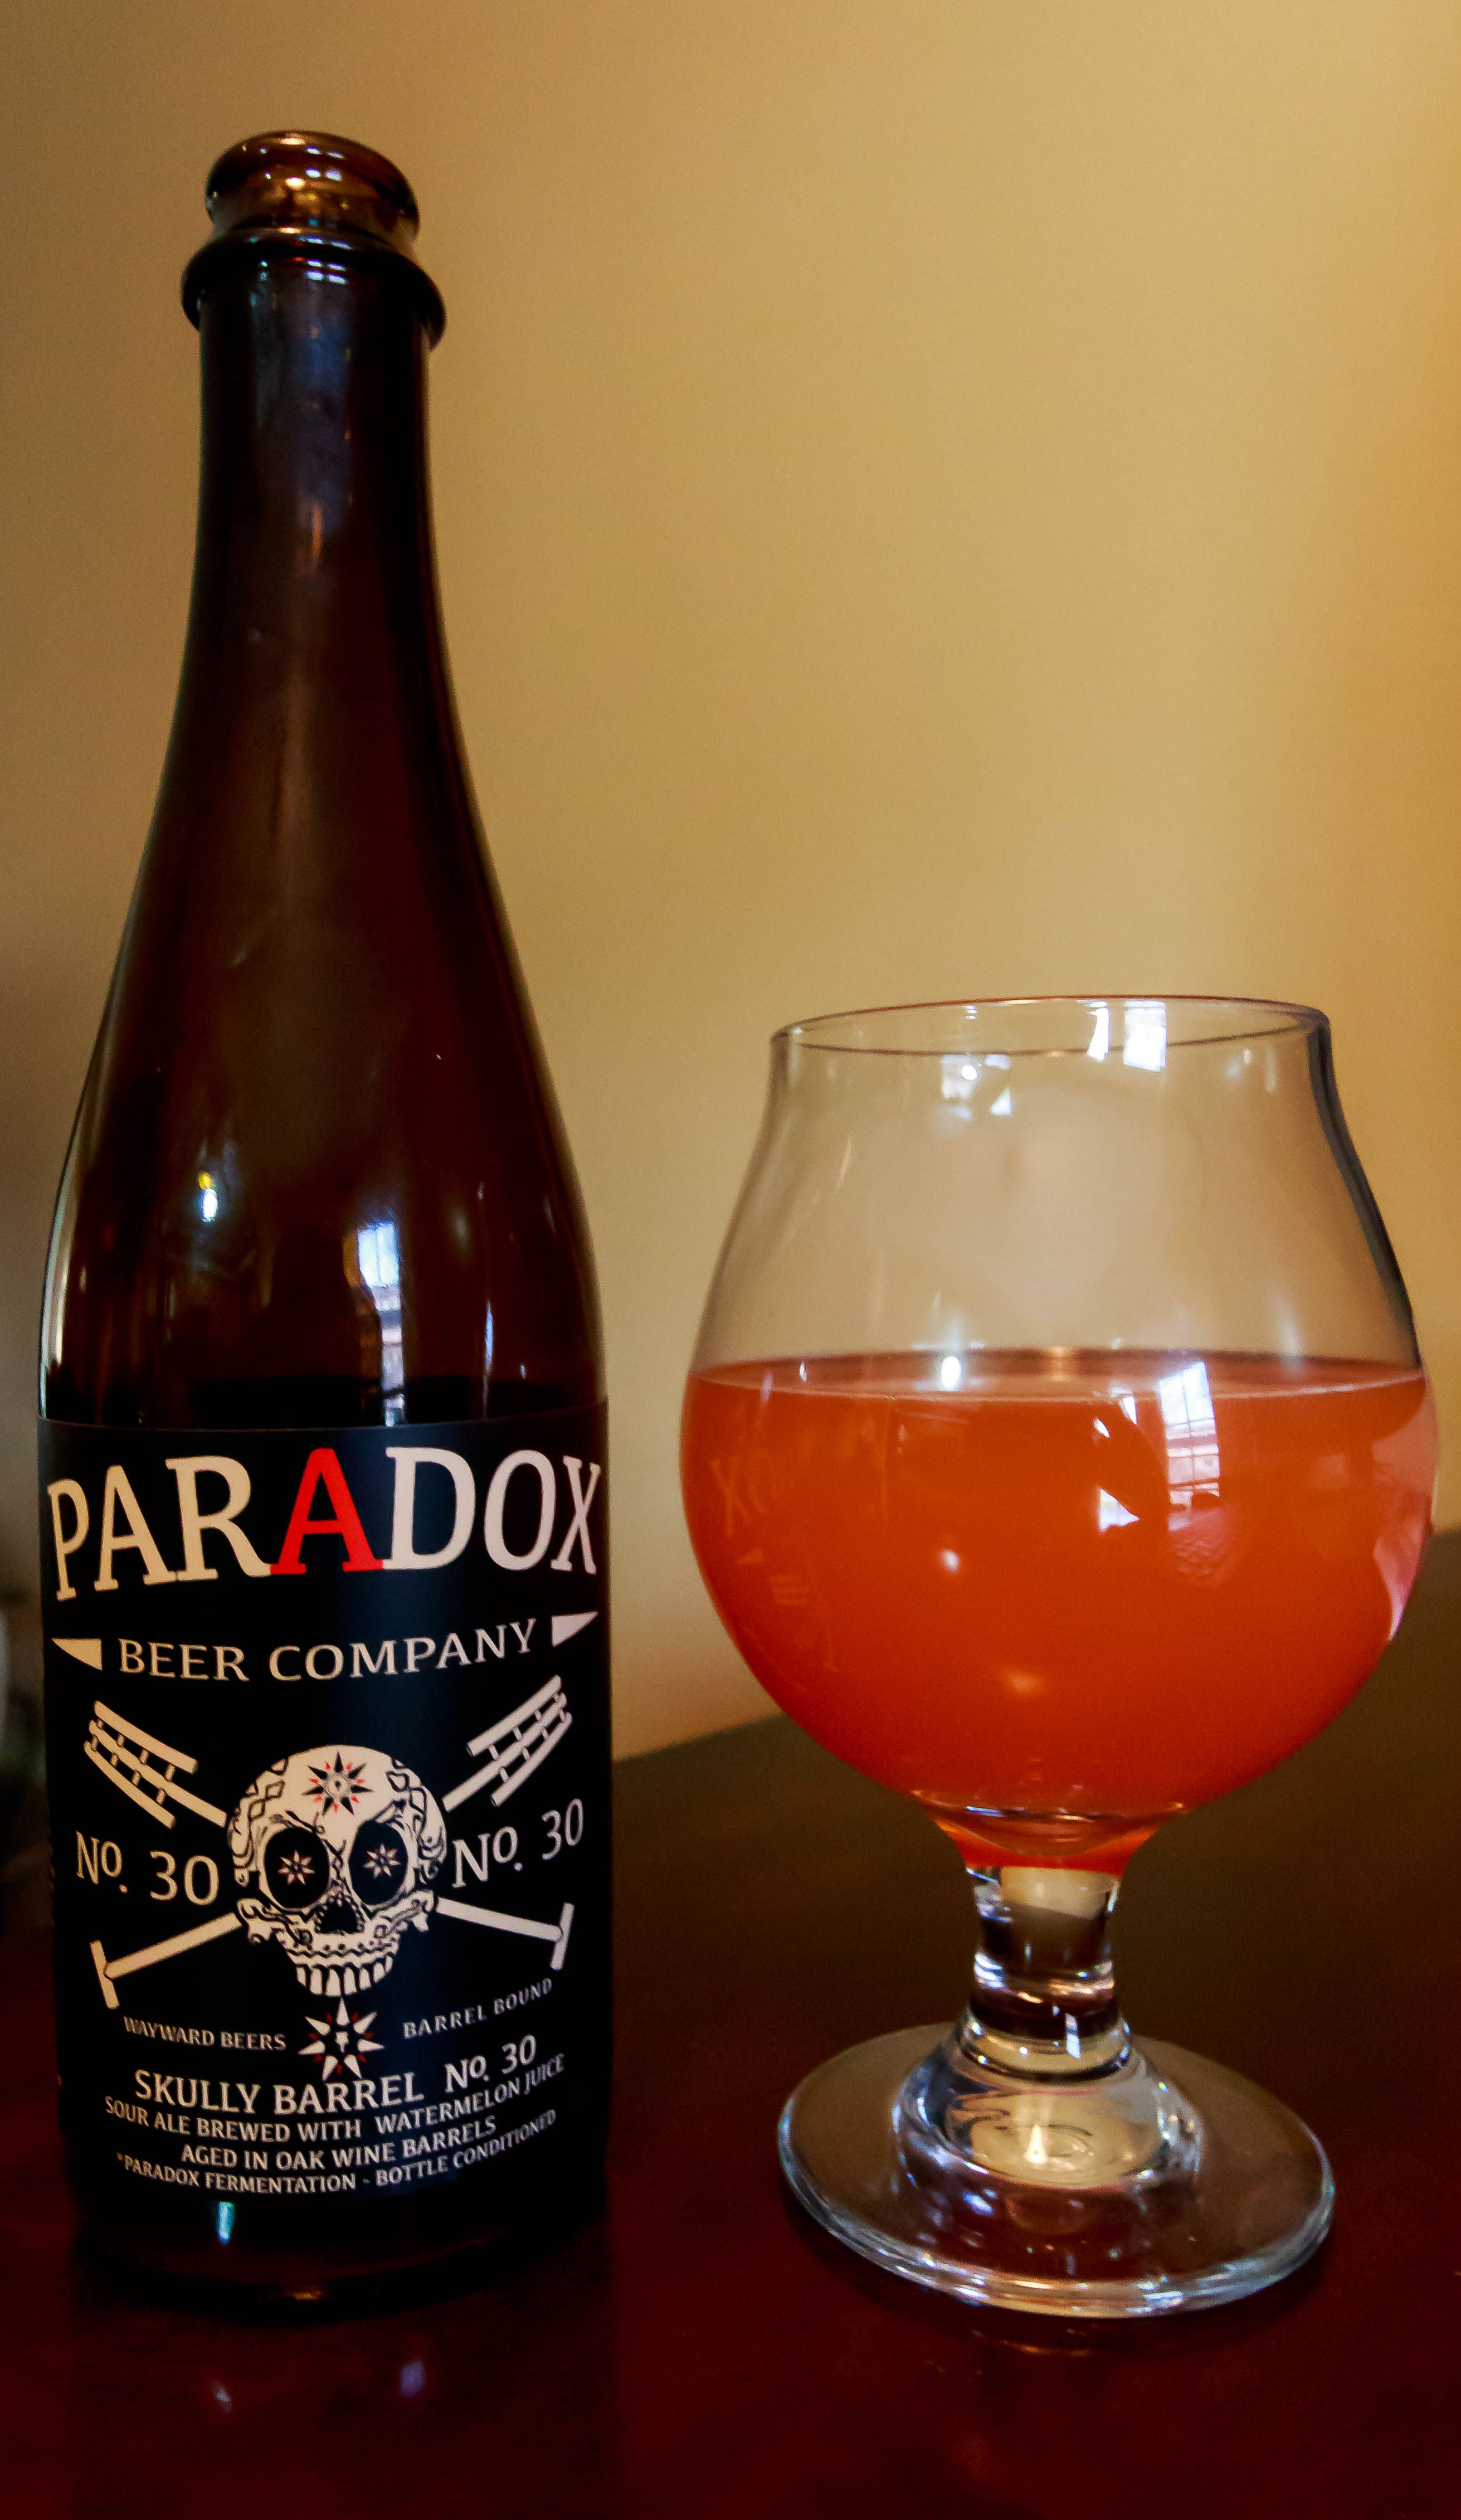 30 Paradox Beer Company Ale 9 ABV Well UhParadox Went And Put Watermelon Juice In This Sour Concoction Brilliant